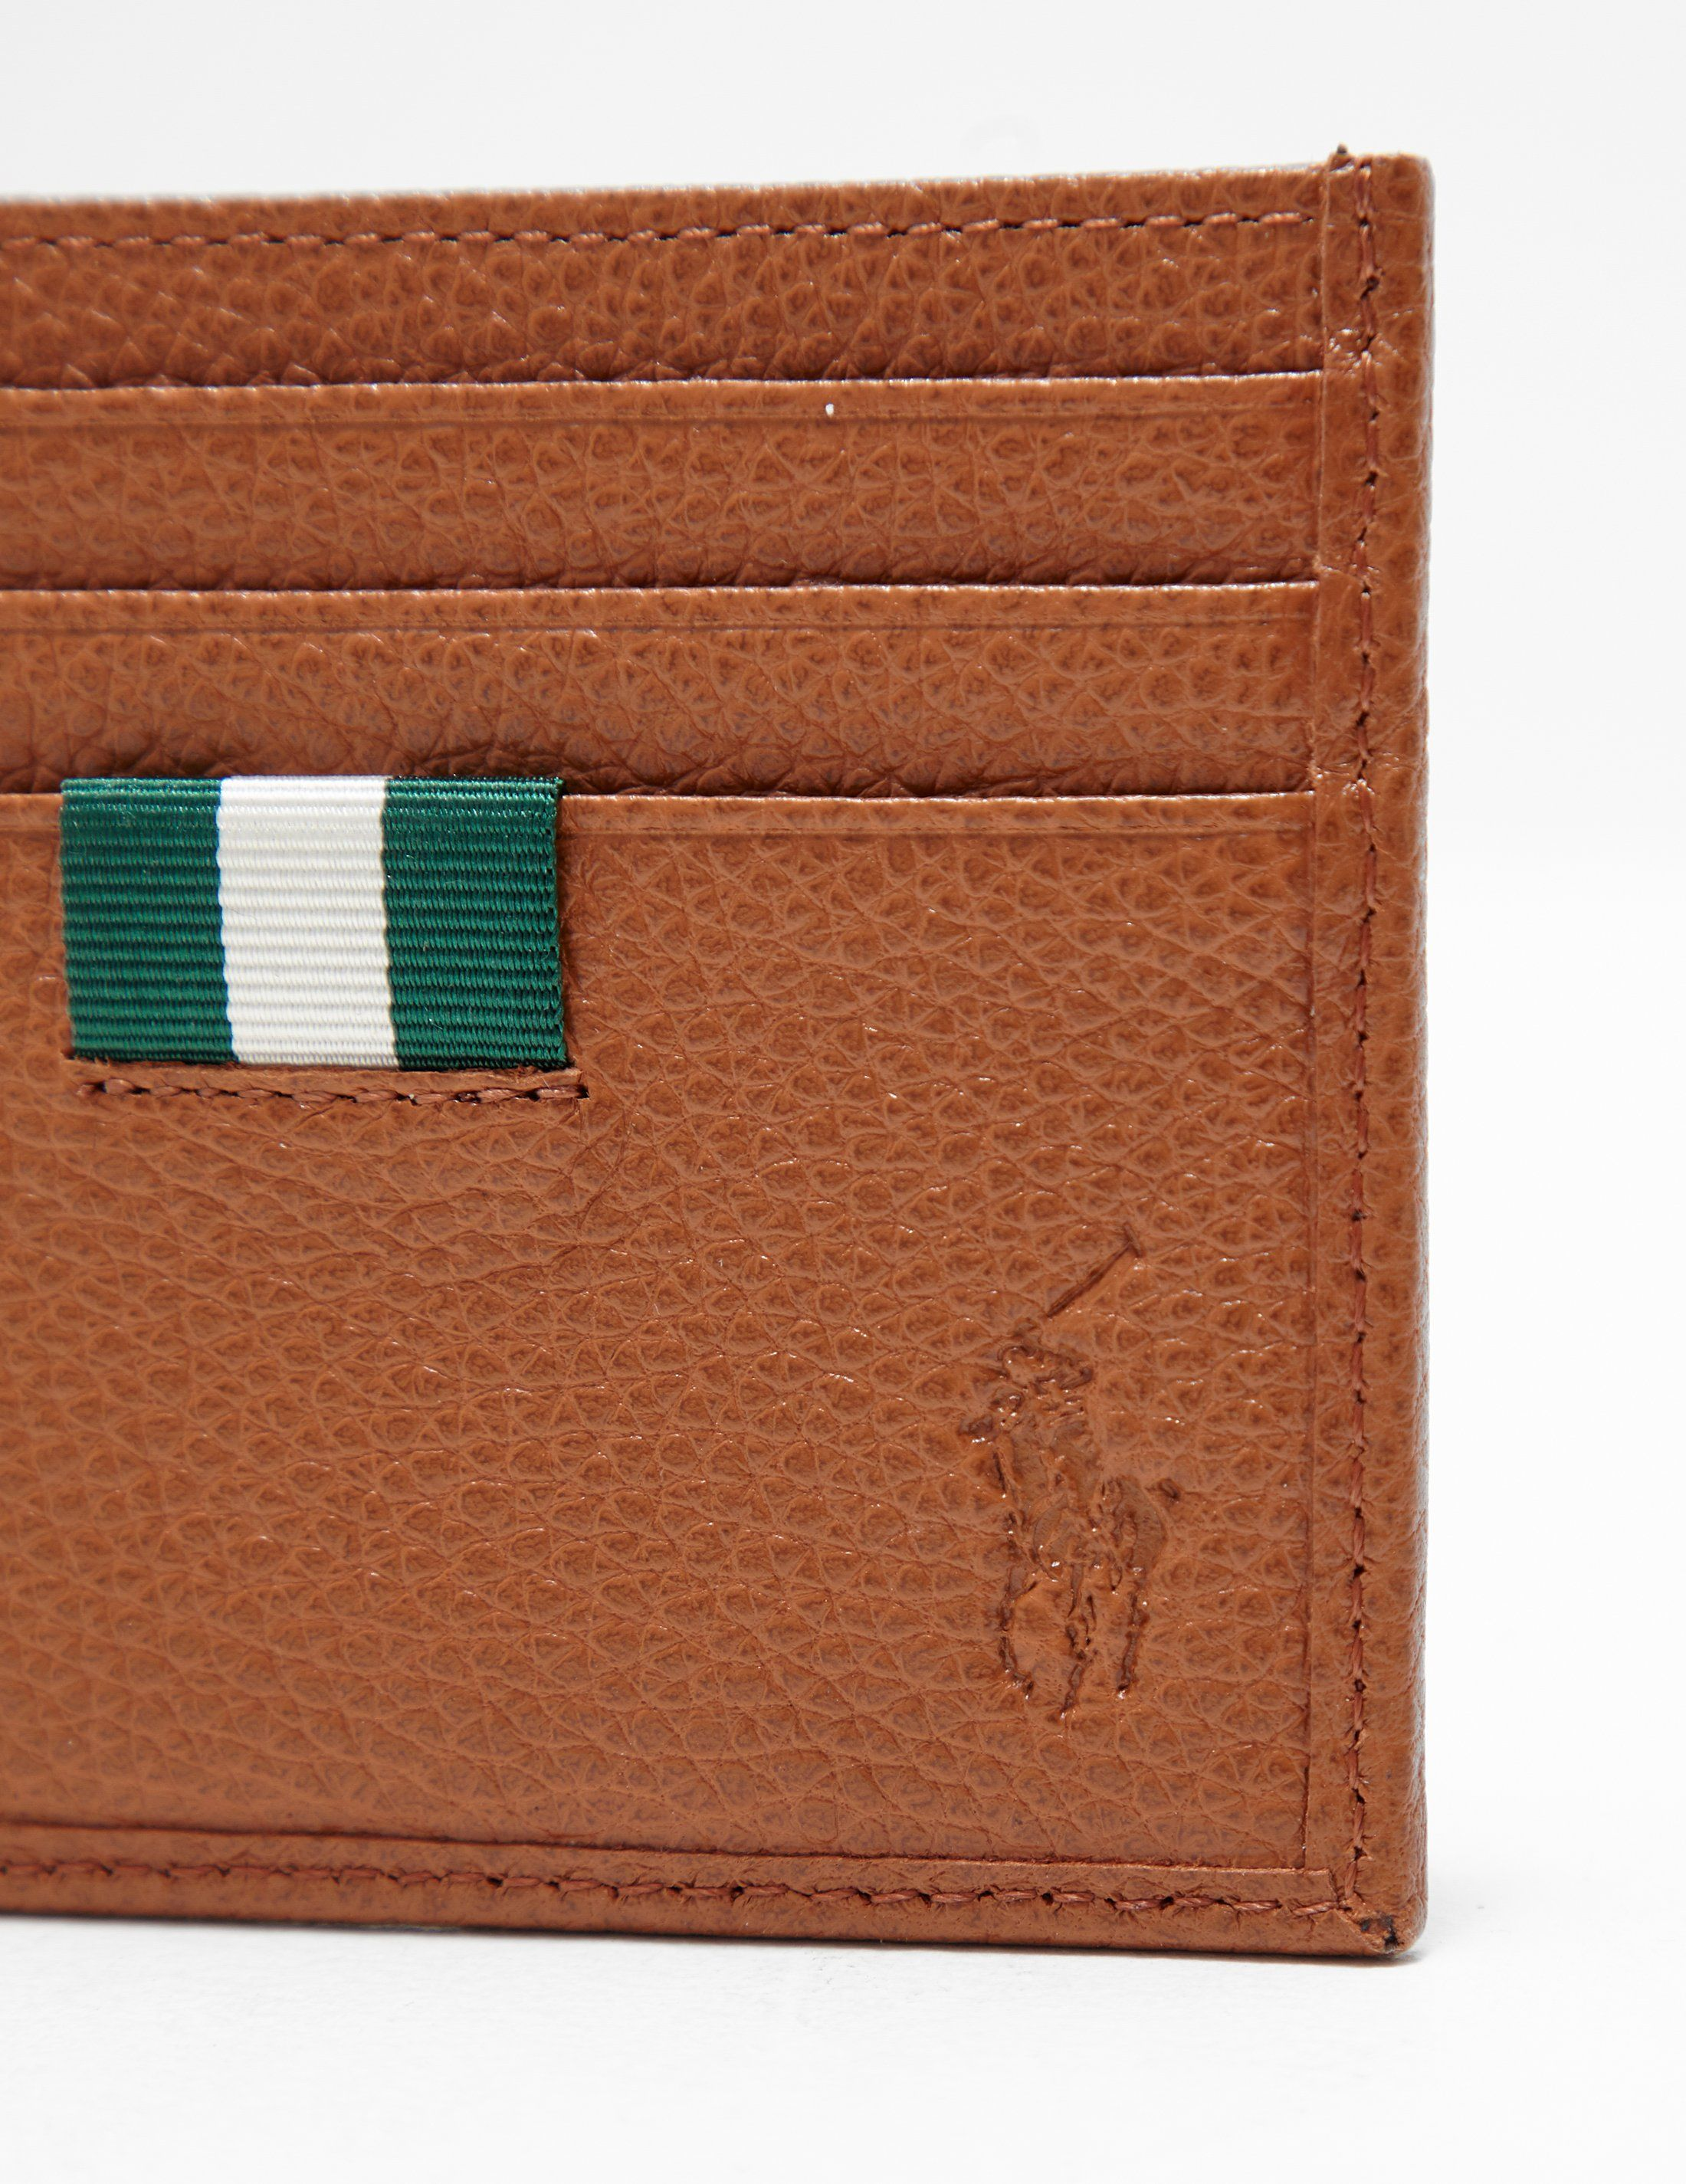 Polo Ralph Lauren Pebble Card Holder